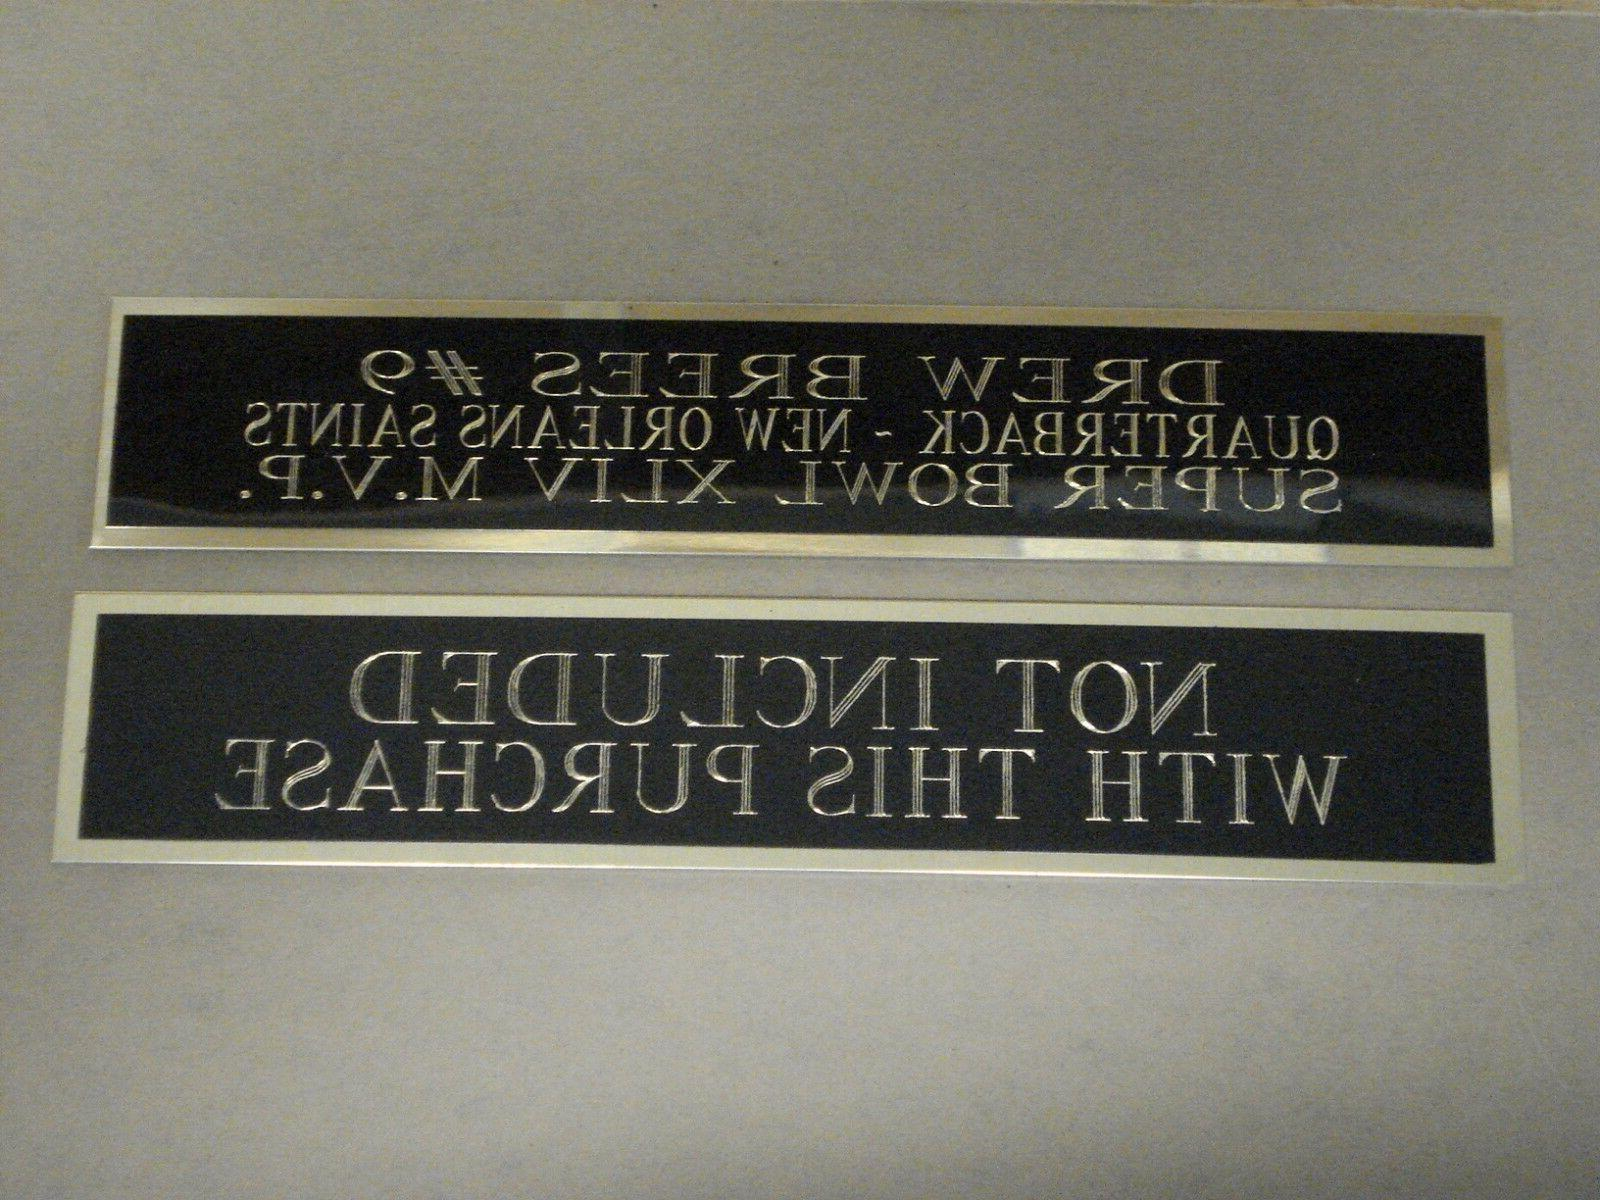 Derrick Nameplate For Display Case 6